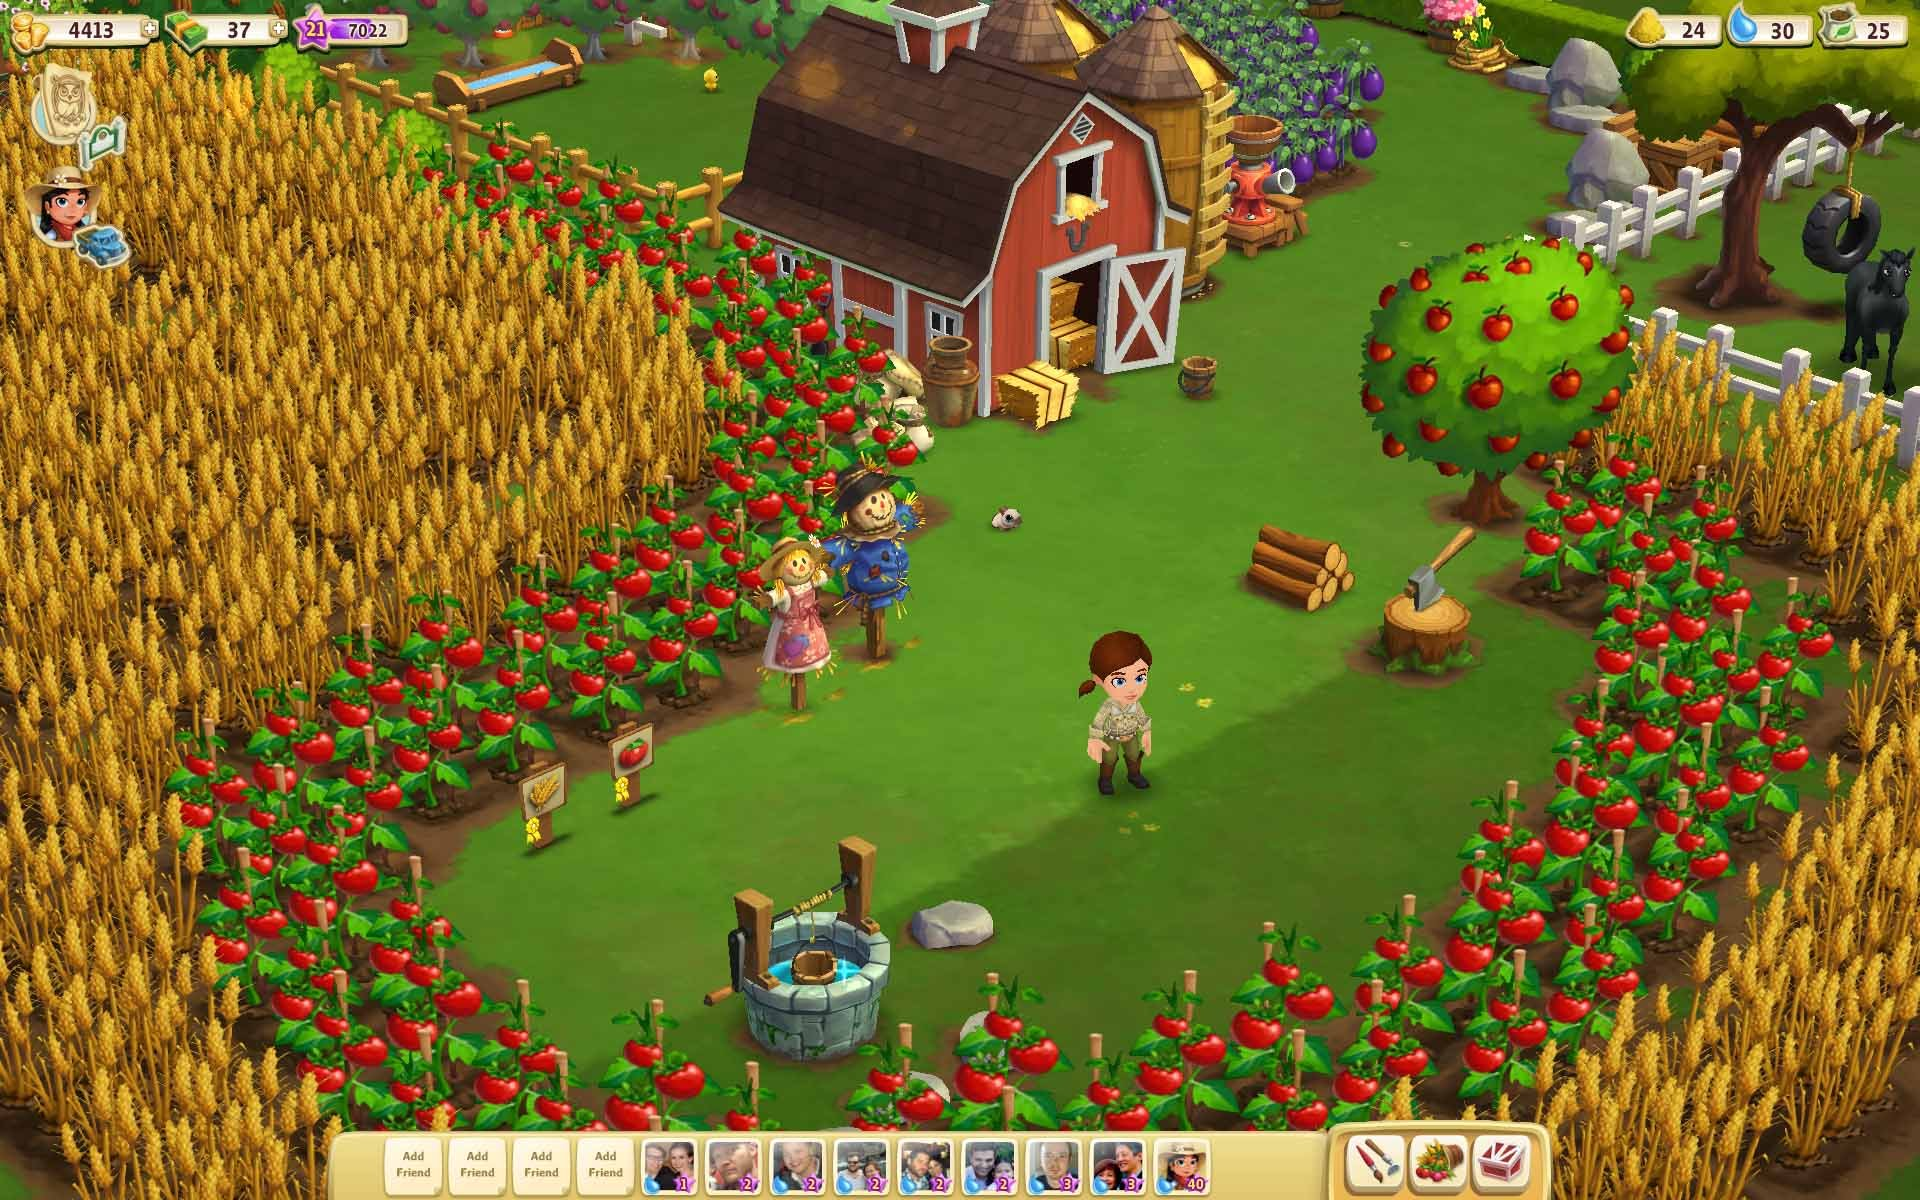 Best Games For Kids to Play For Teaching Online